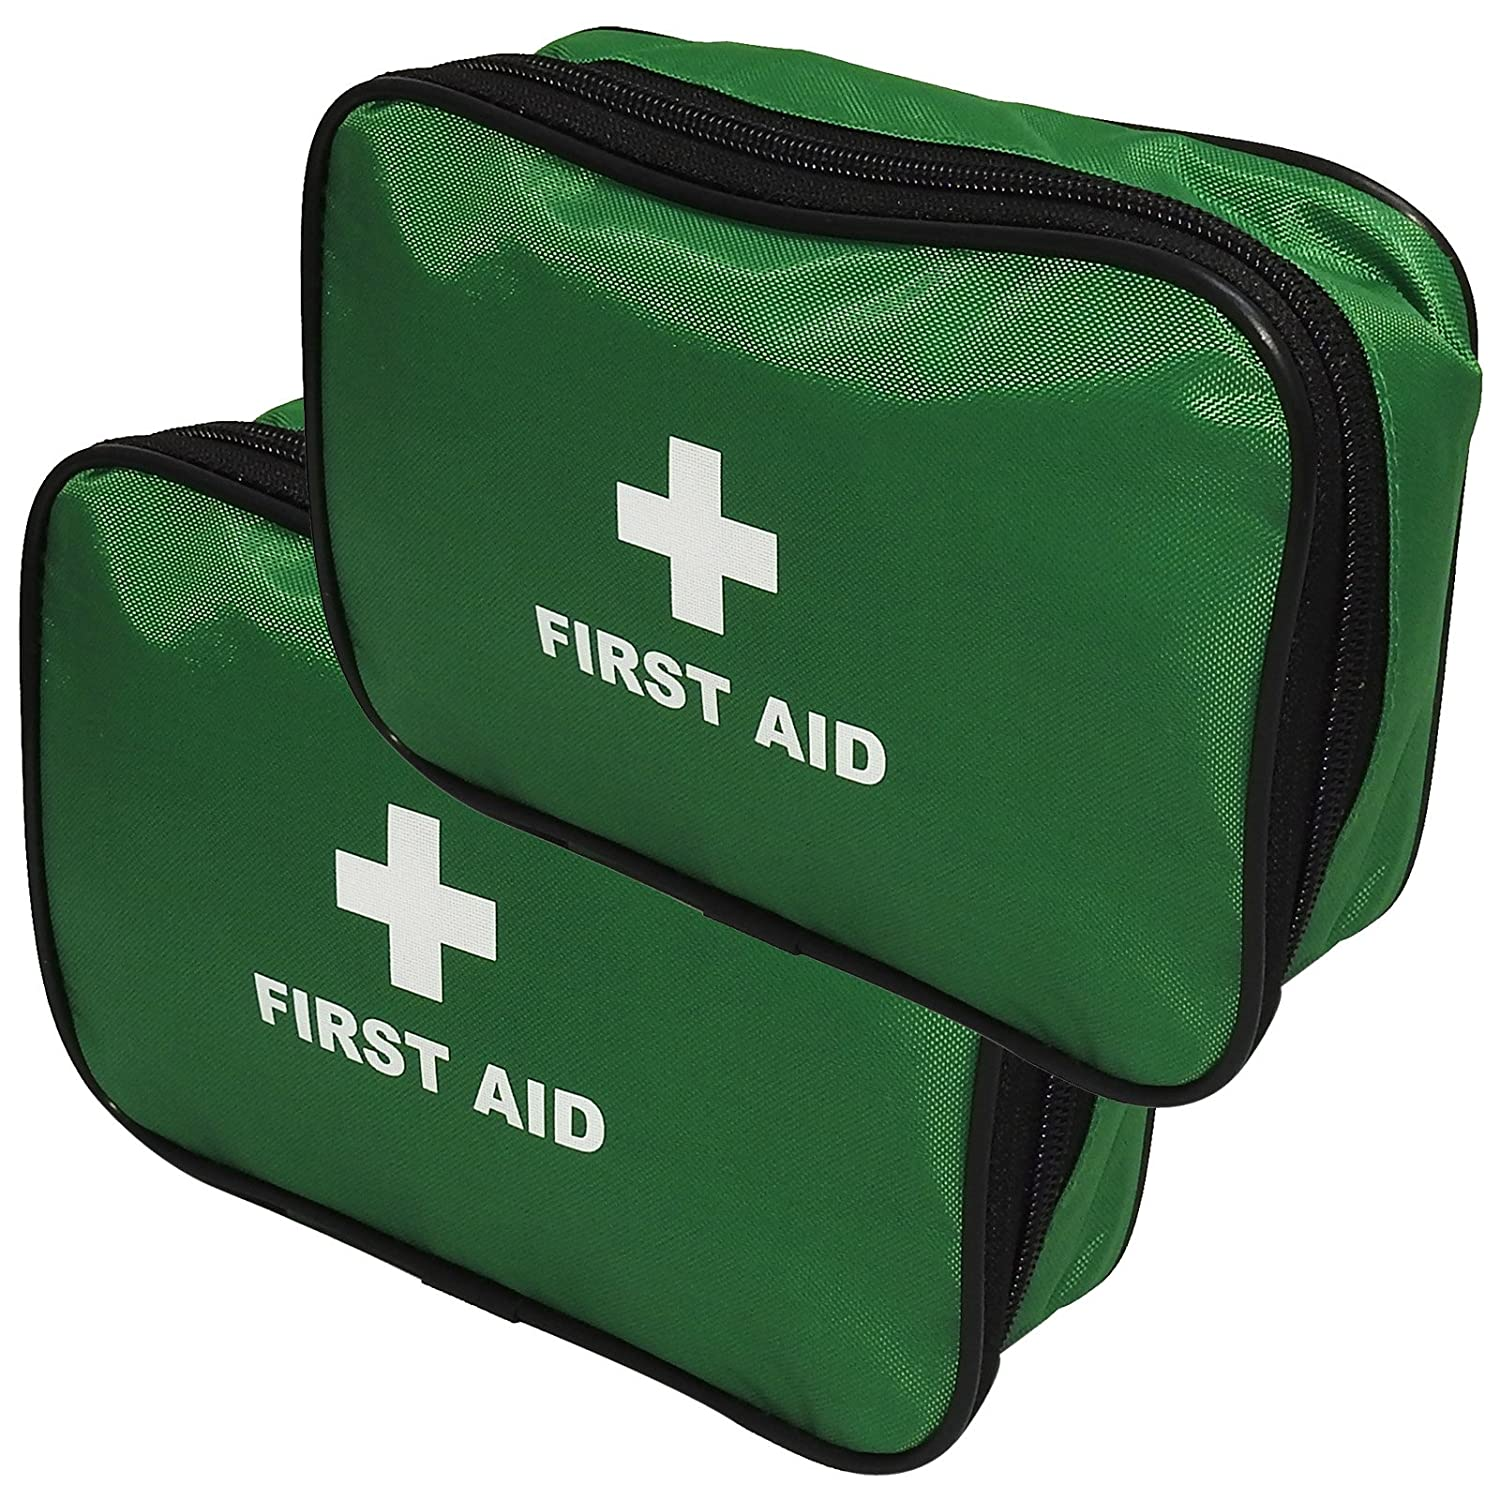 Qualicare Large Zip Top Bag Easy Carry Empty First Aid